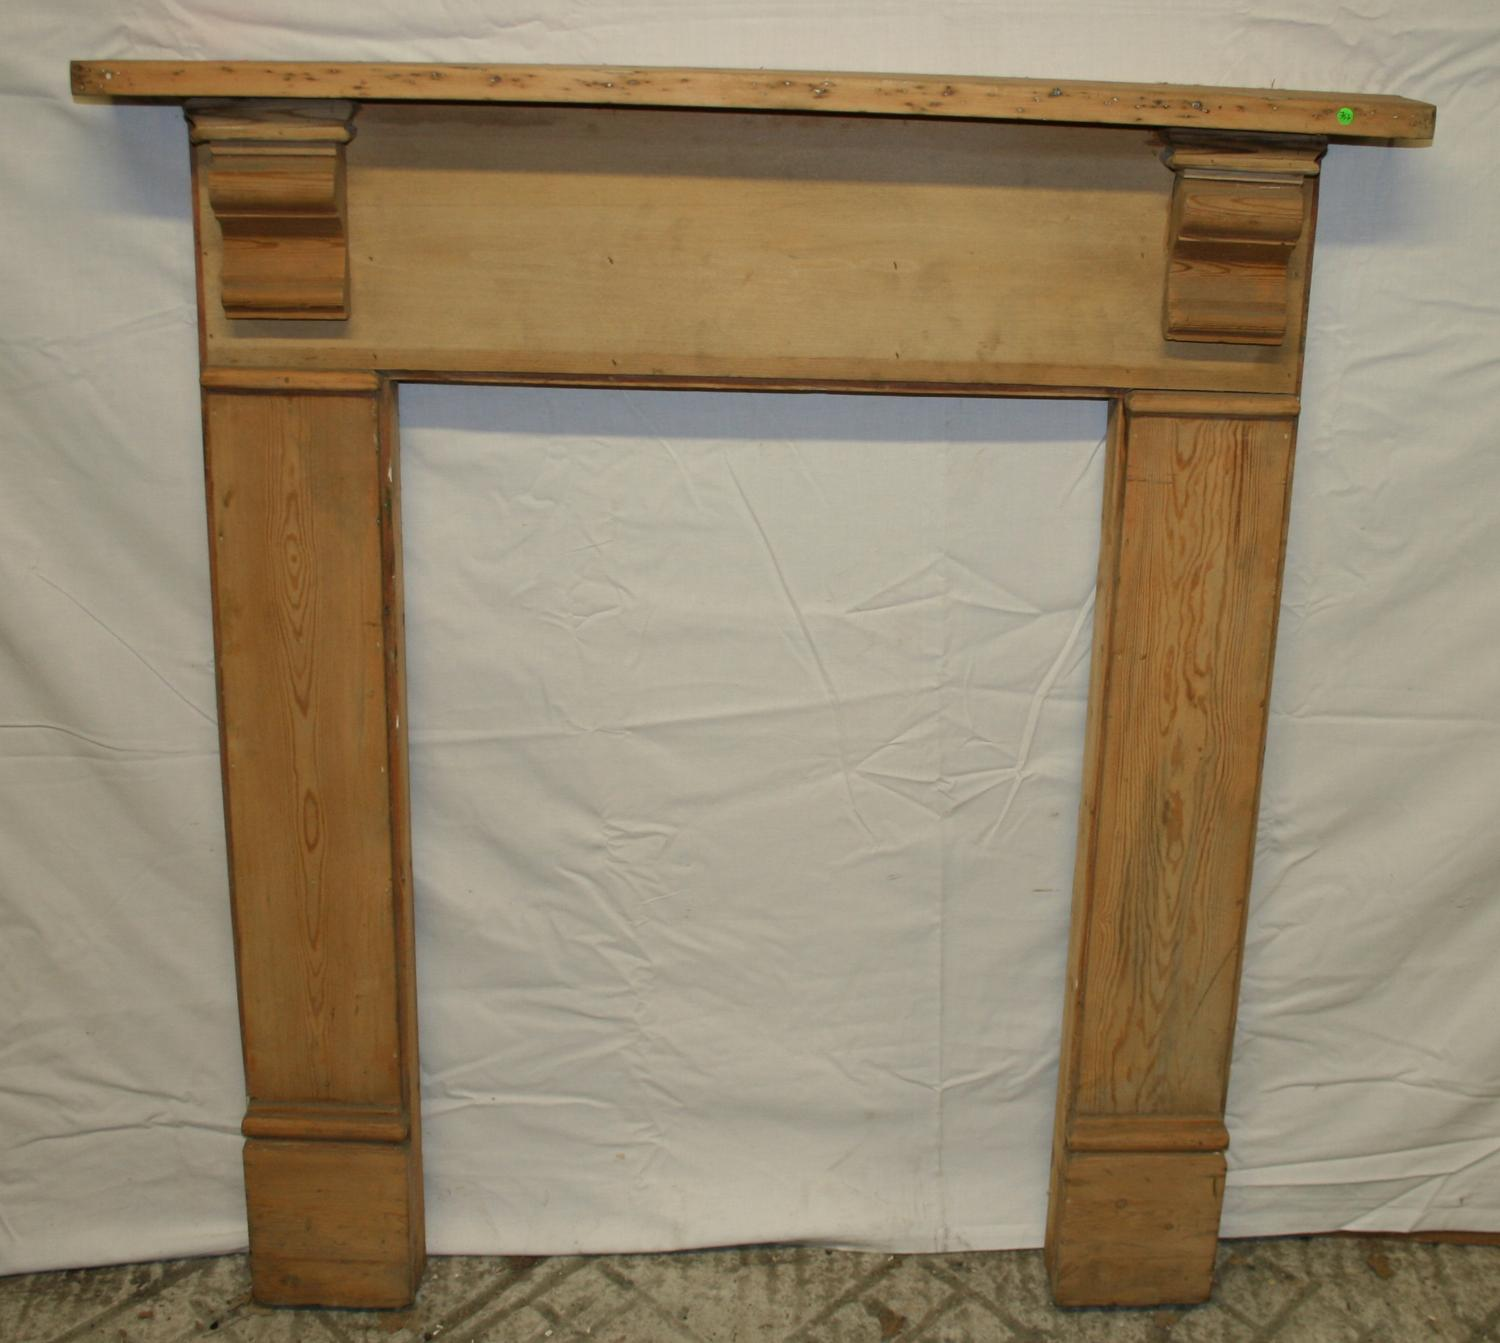 FS0011 A Stripped Pine Fire Surround